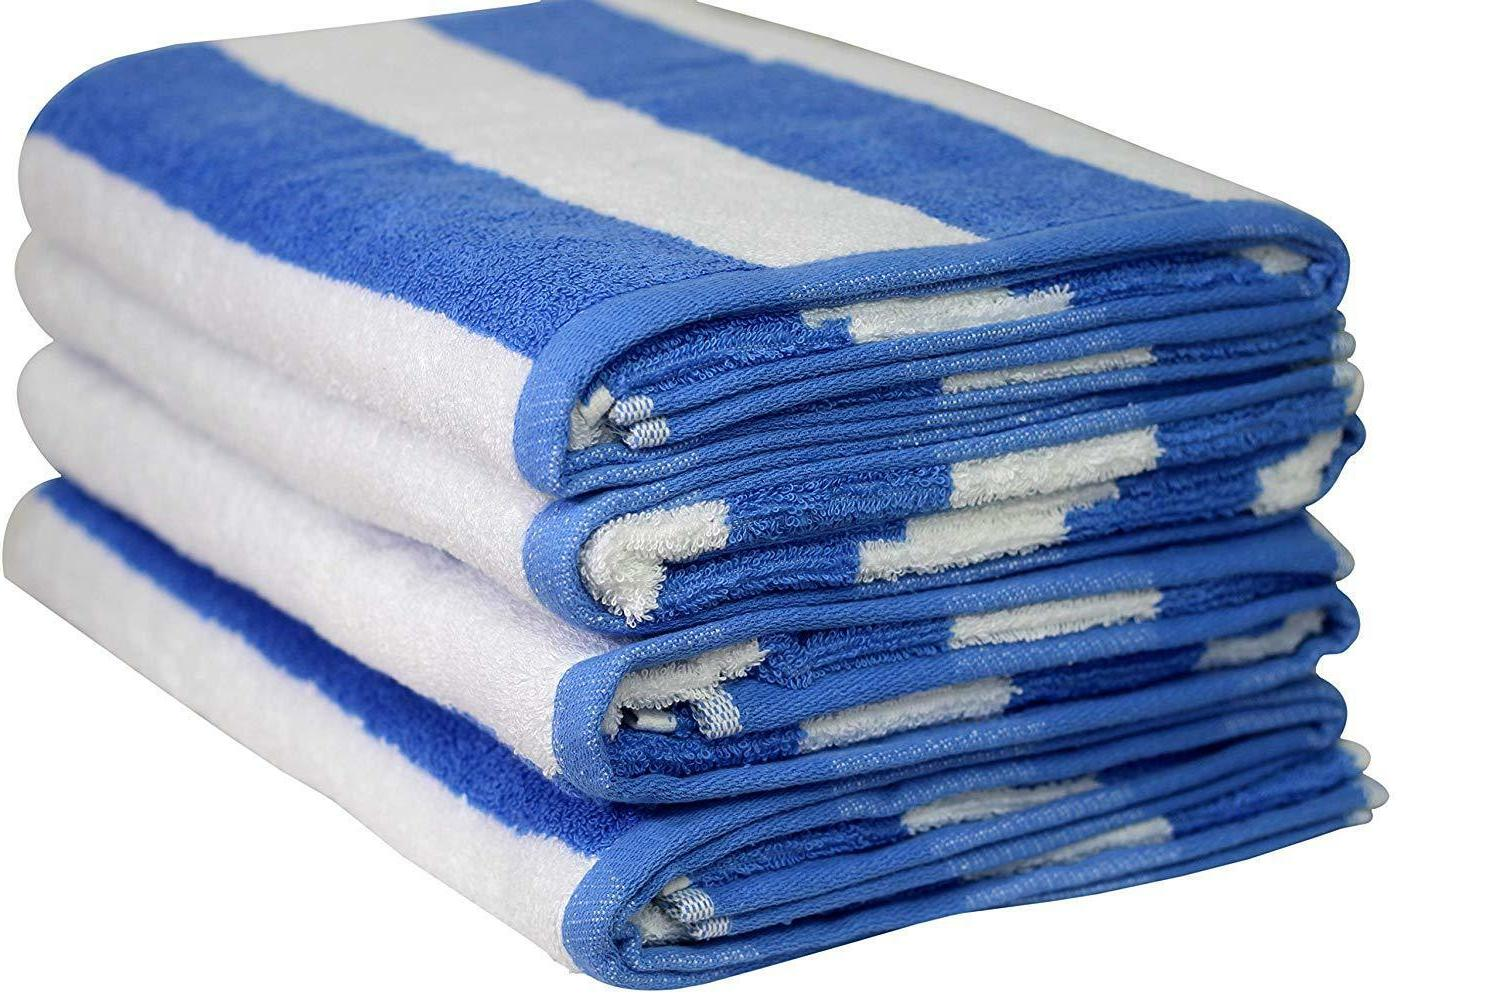 4 inches-Large Towels MIMAATEX